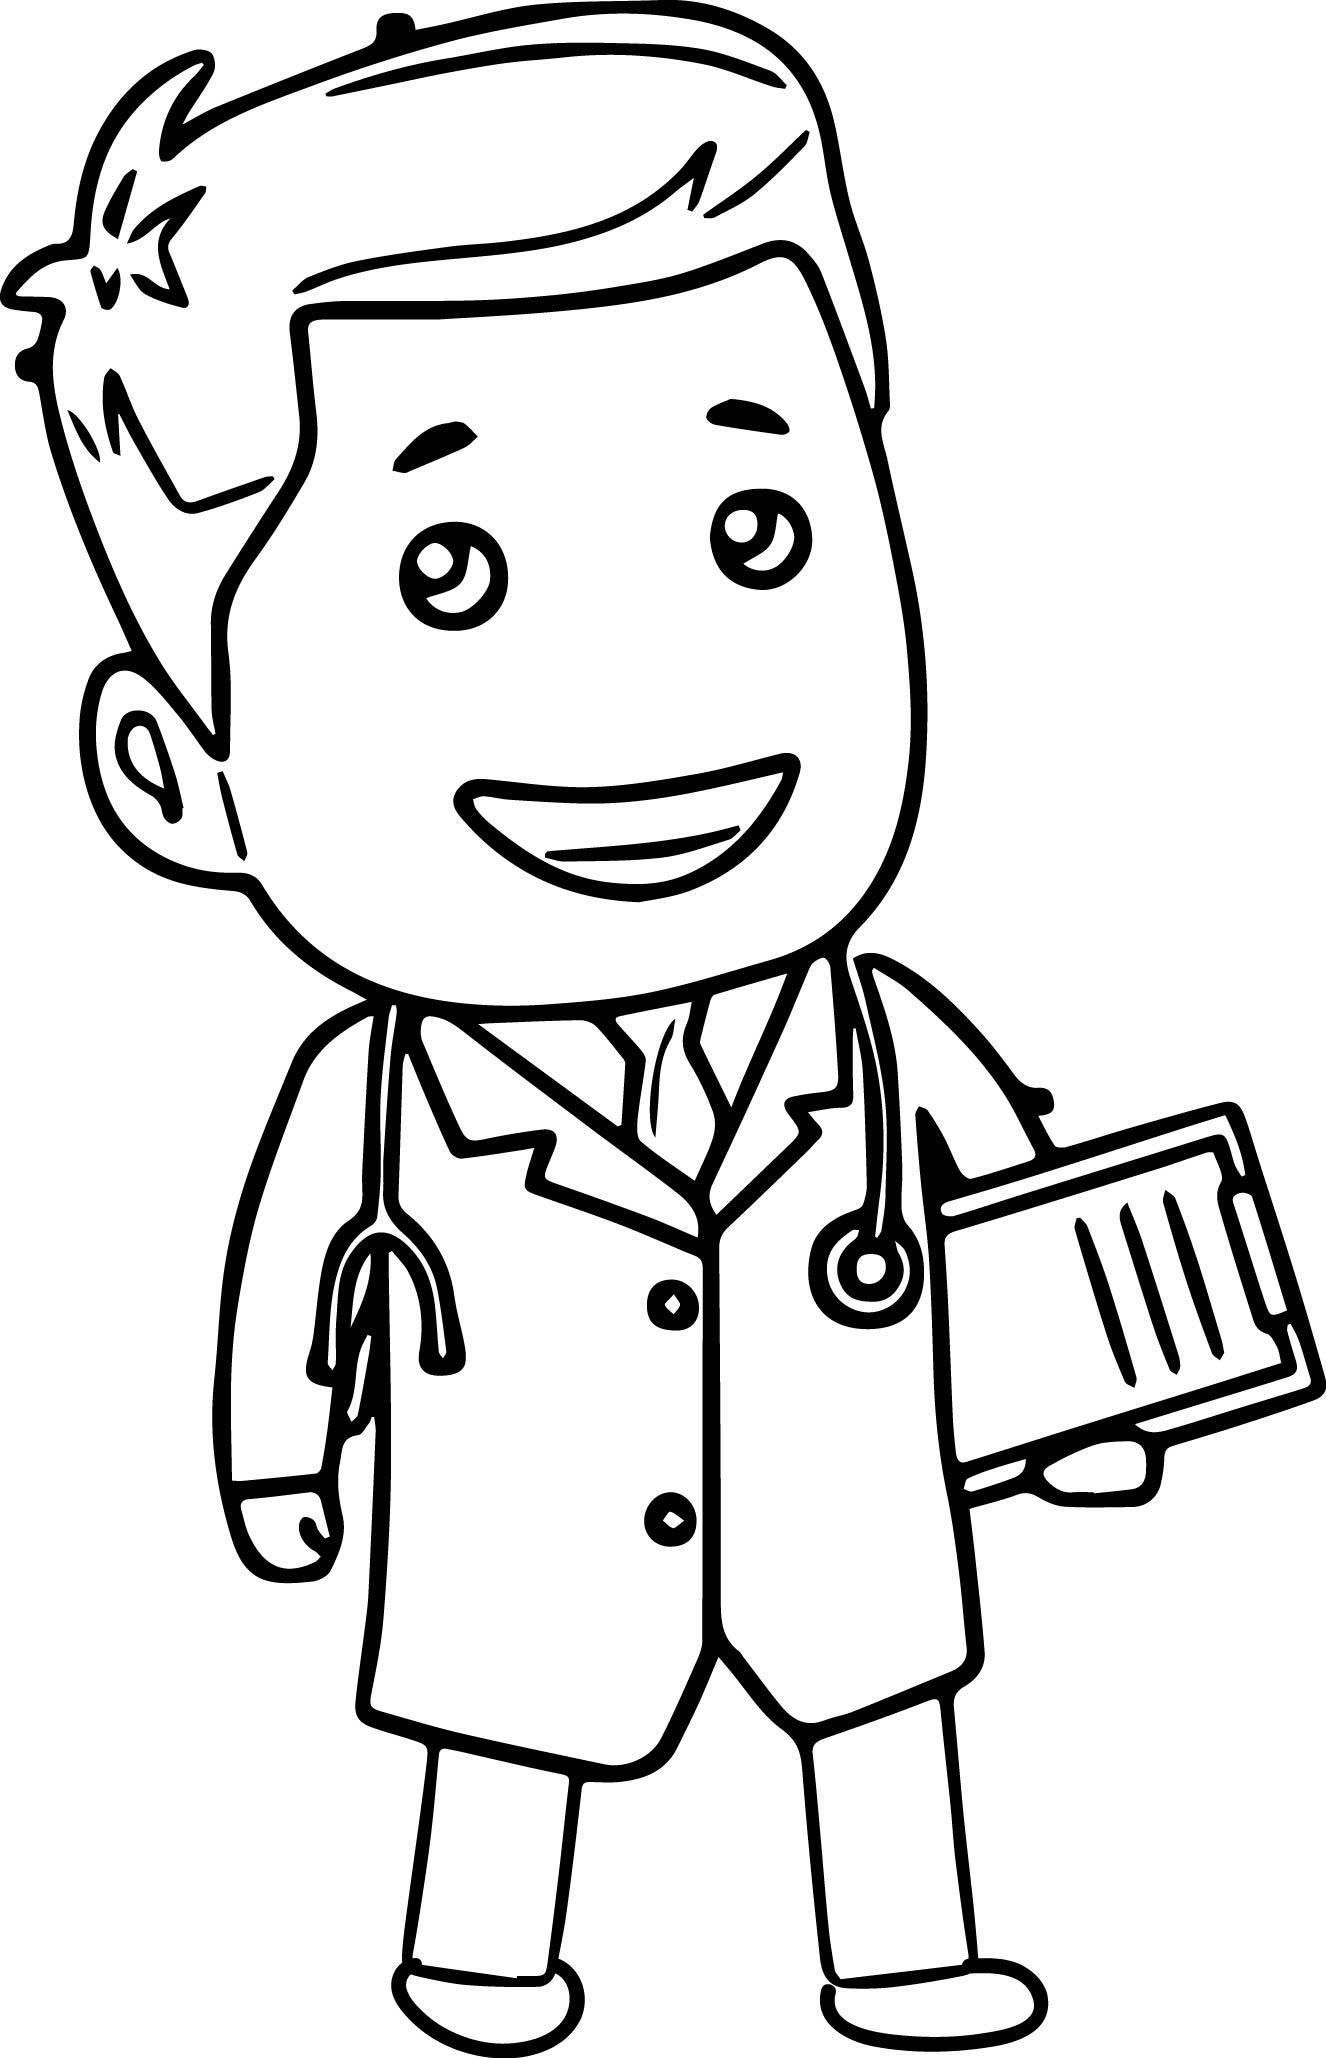 Clipart doctor black and white. Free download clip art